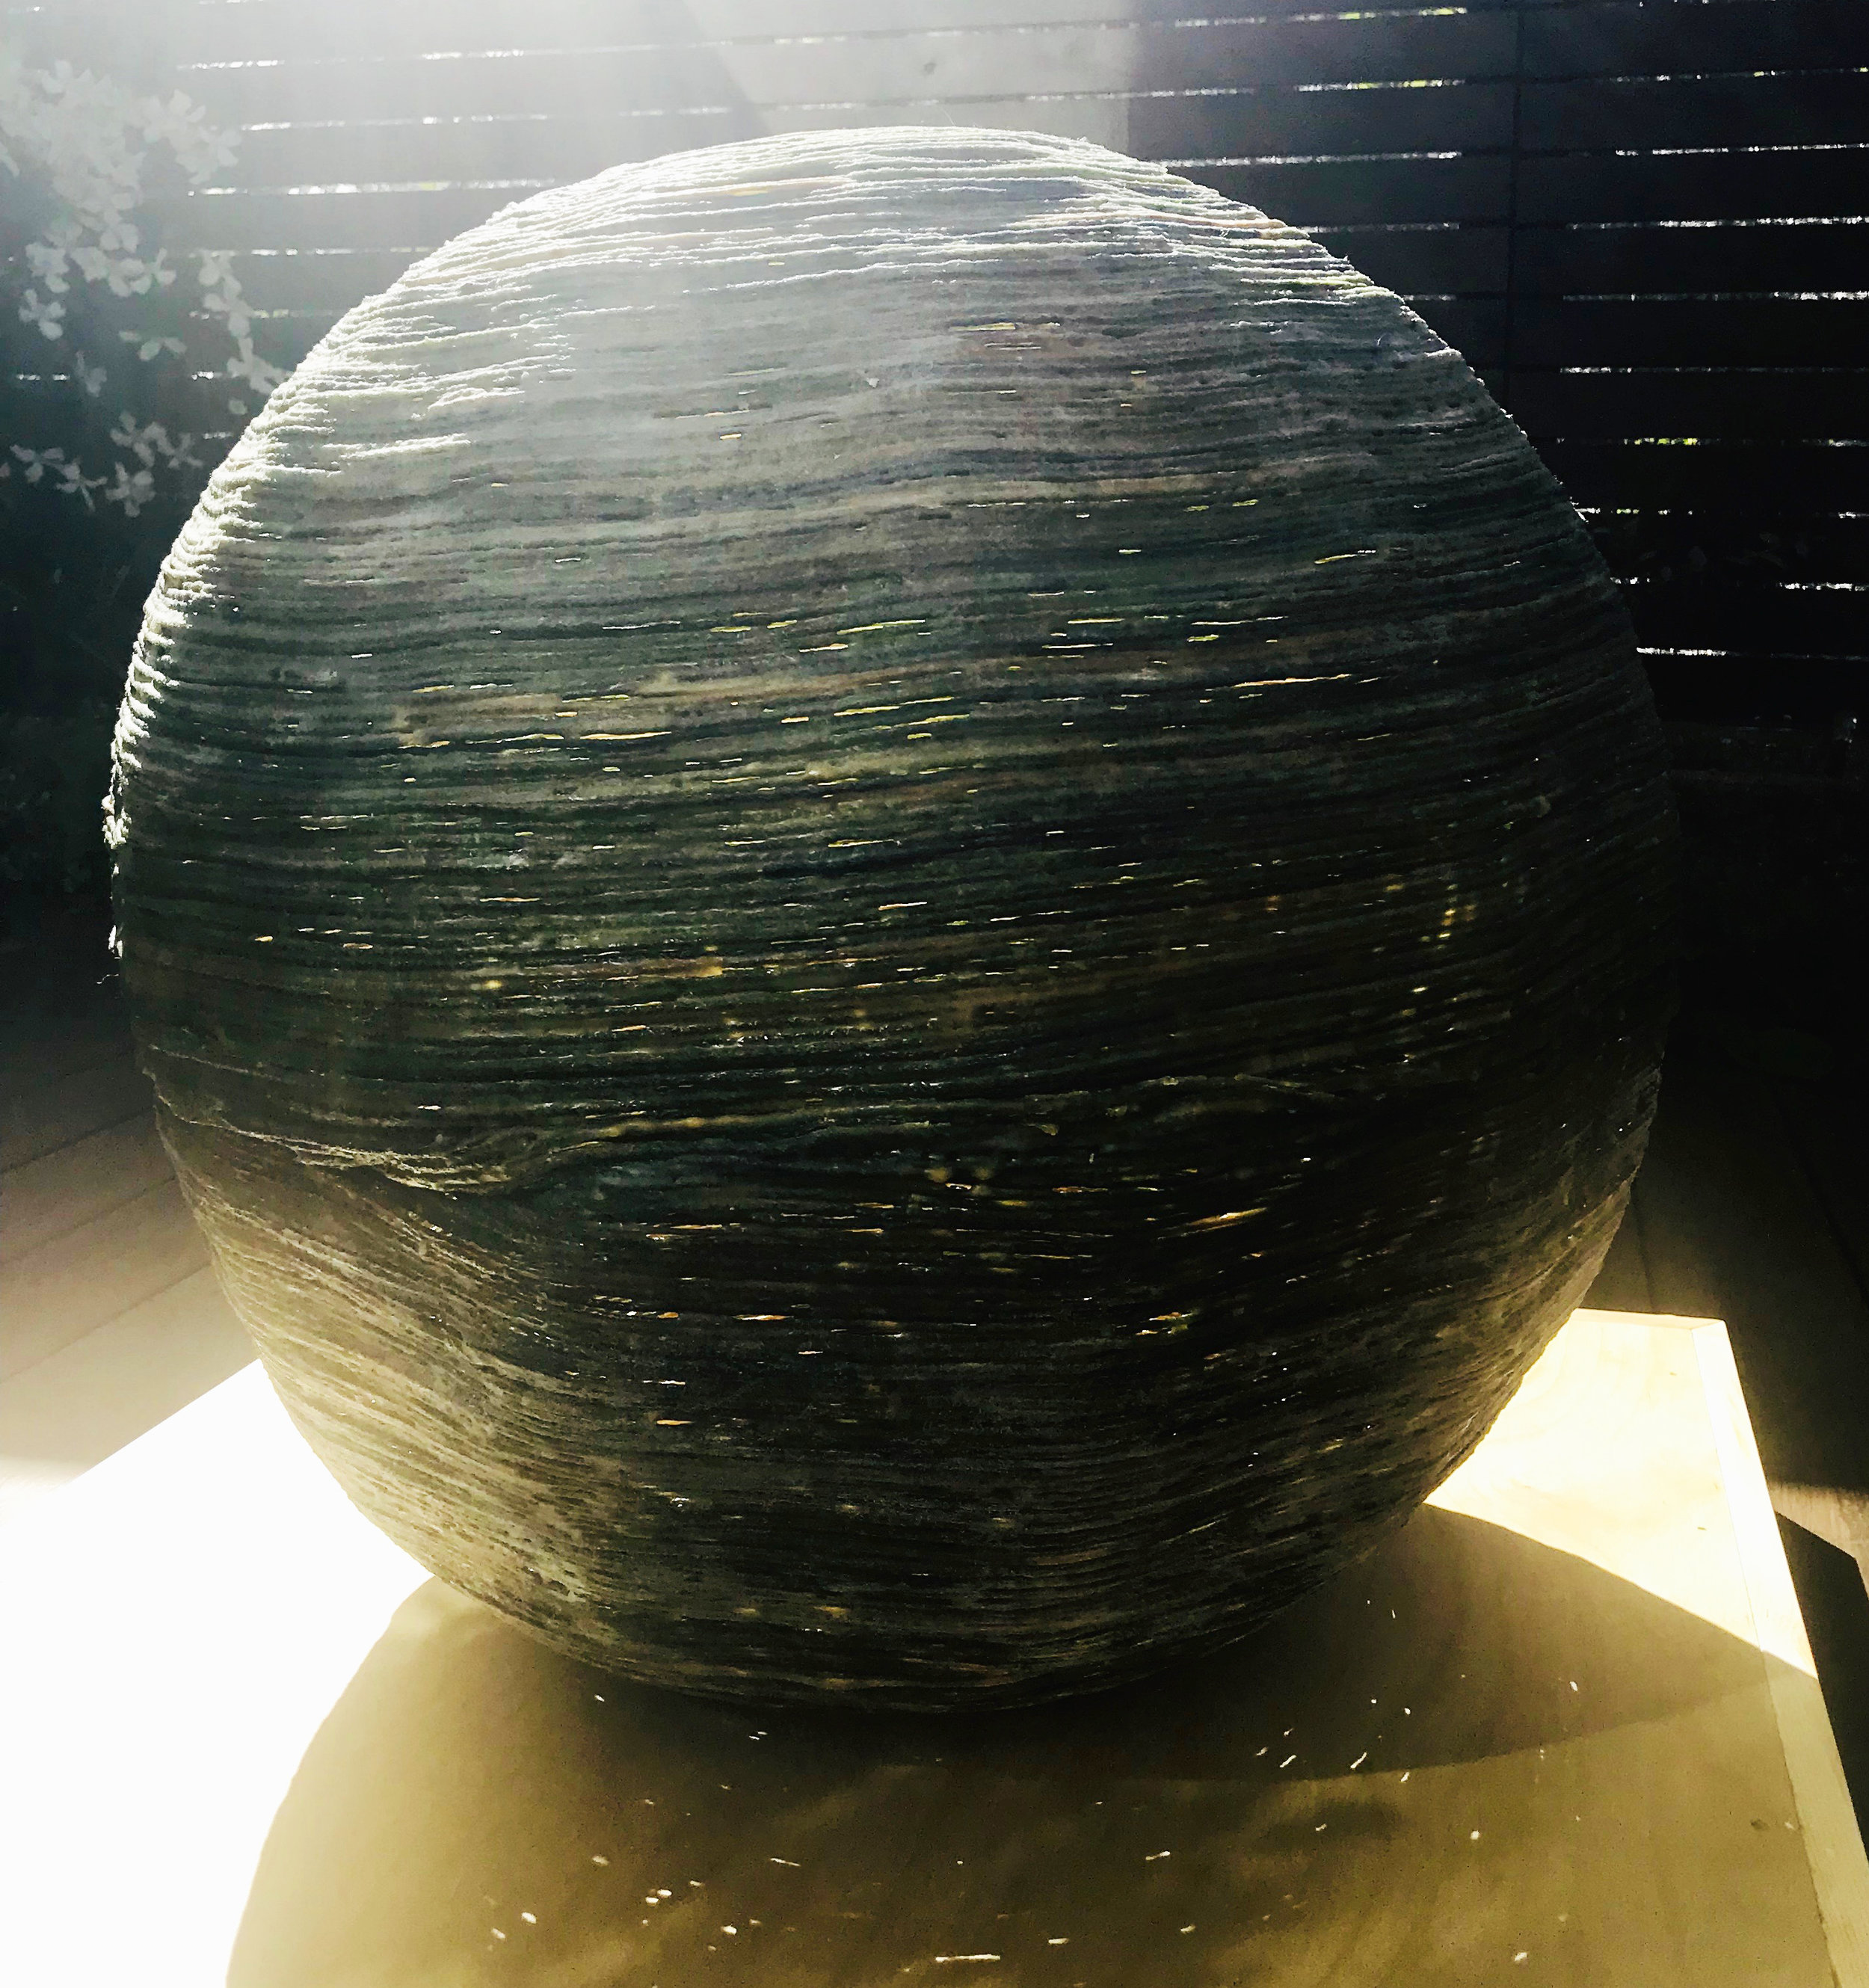 String/beeswax sphere melting in sun May 1, 2019.